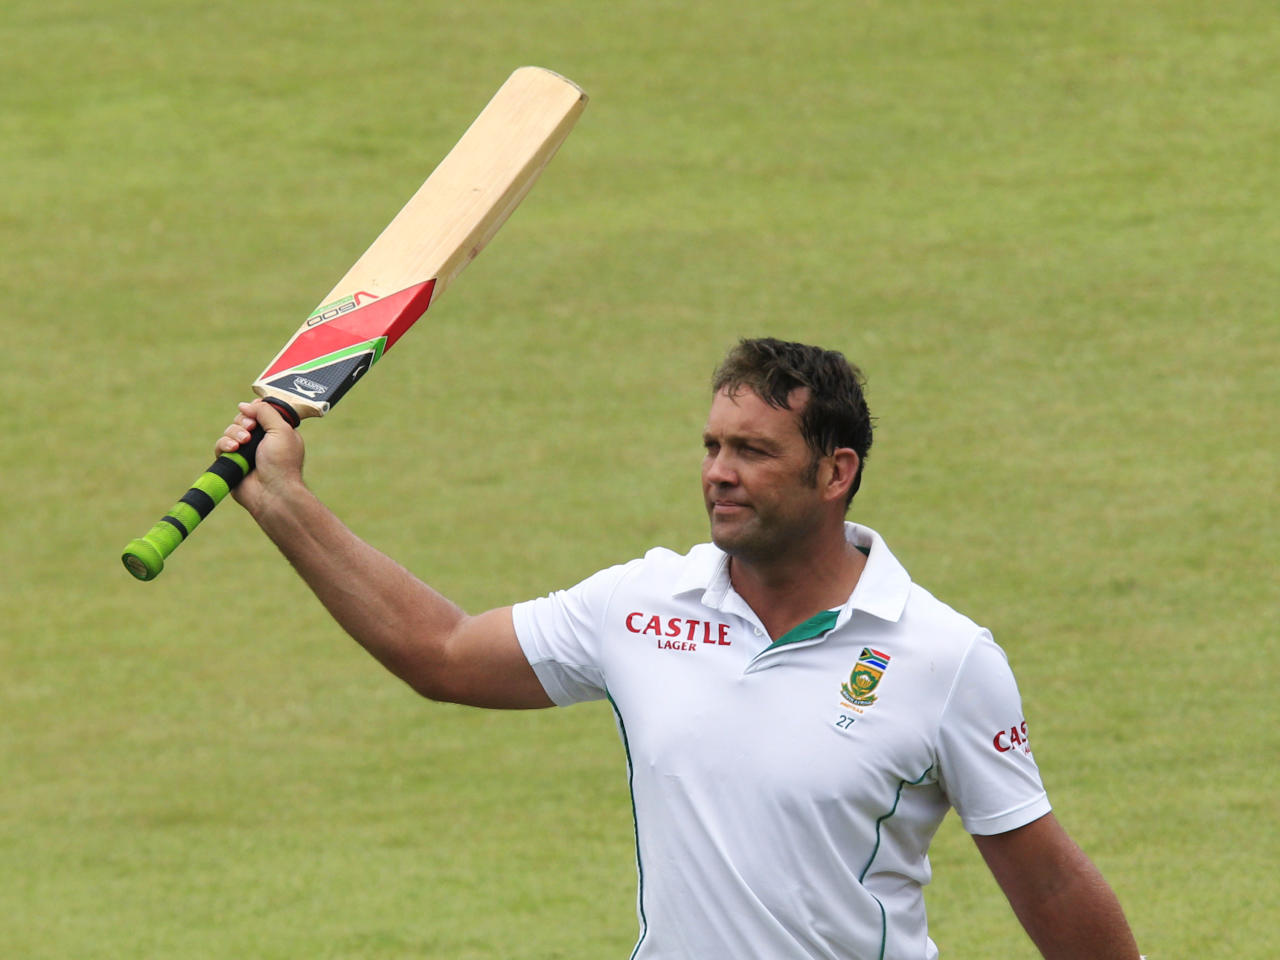 South Africa's Jacques Kallis acknowledges the applause from the spectators after he got out in his last test appearance during the fourth day of the second cricket test match against India in Durban, December 29, 2013. REUTERS/Rogan Ward (SOUTH AFRICA - Tags: SPORT CRICKET)